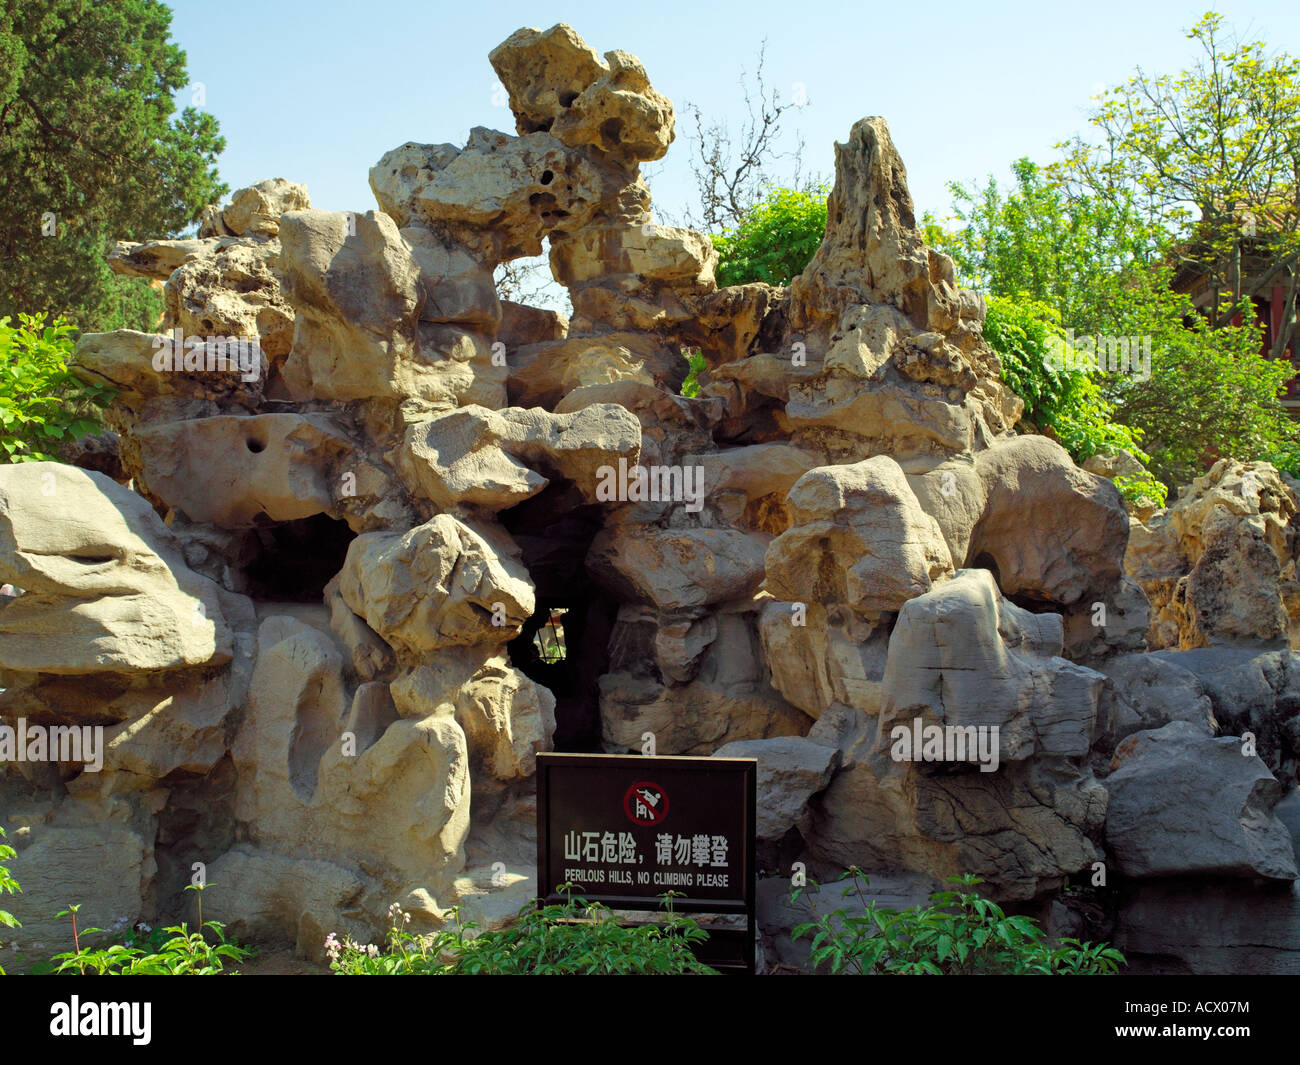 Chinese Imperial Garden Stock Photos & Chinese Imperial Garden Stock ...